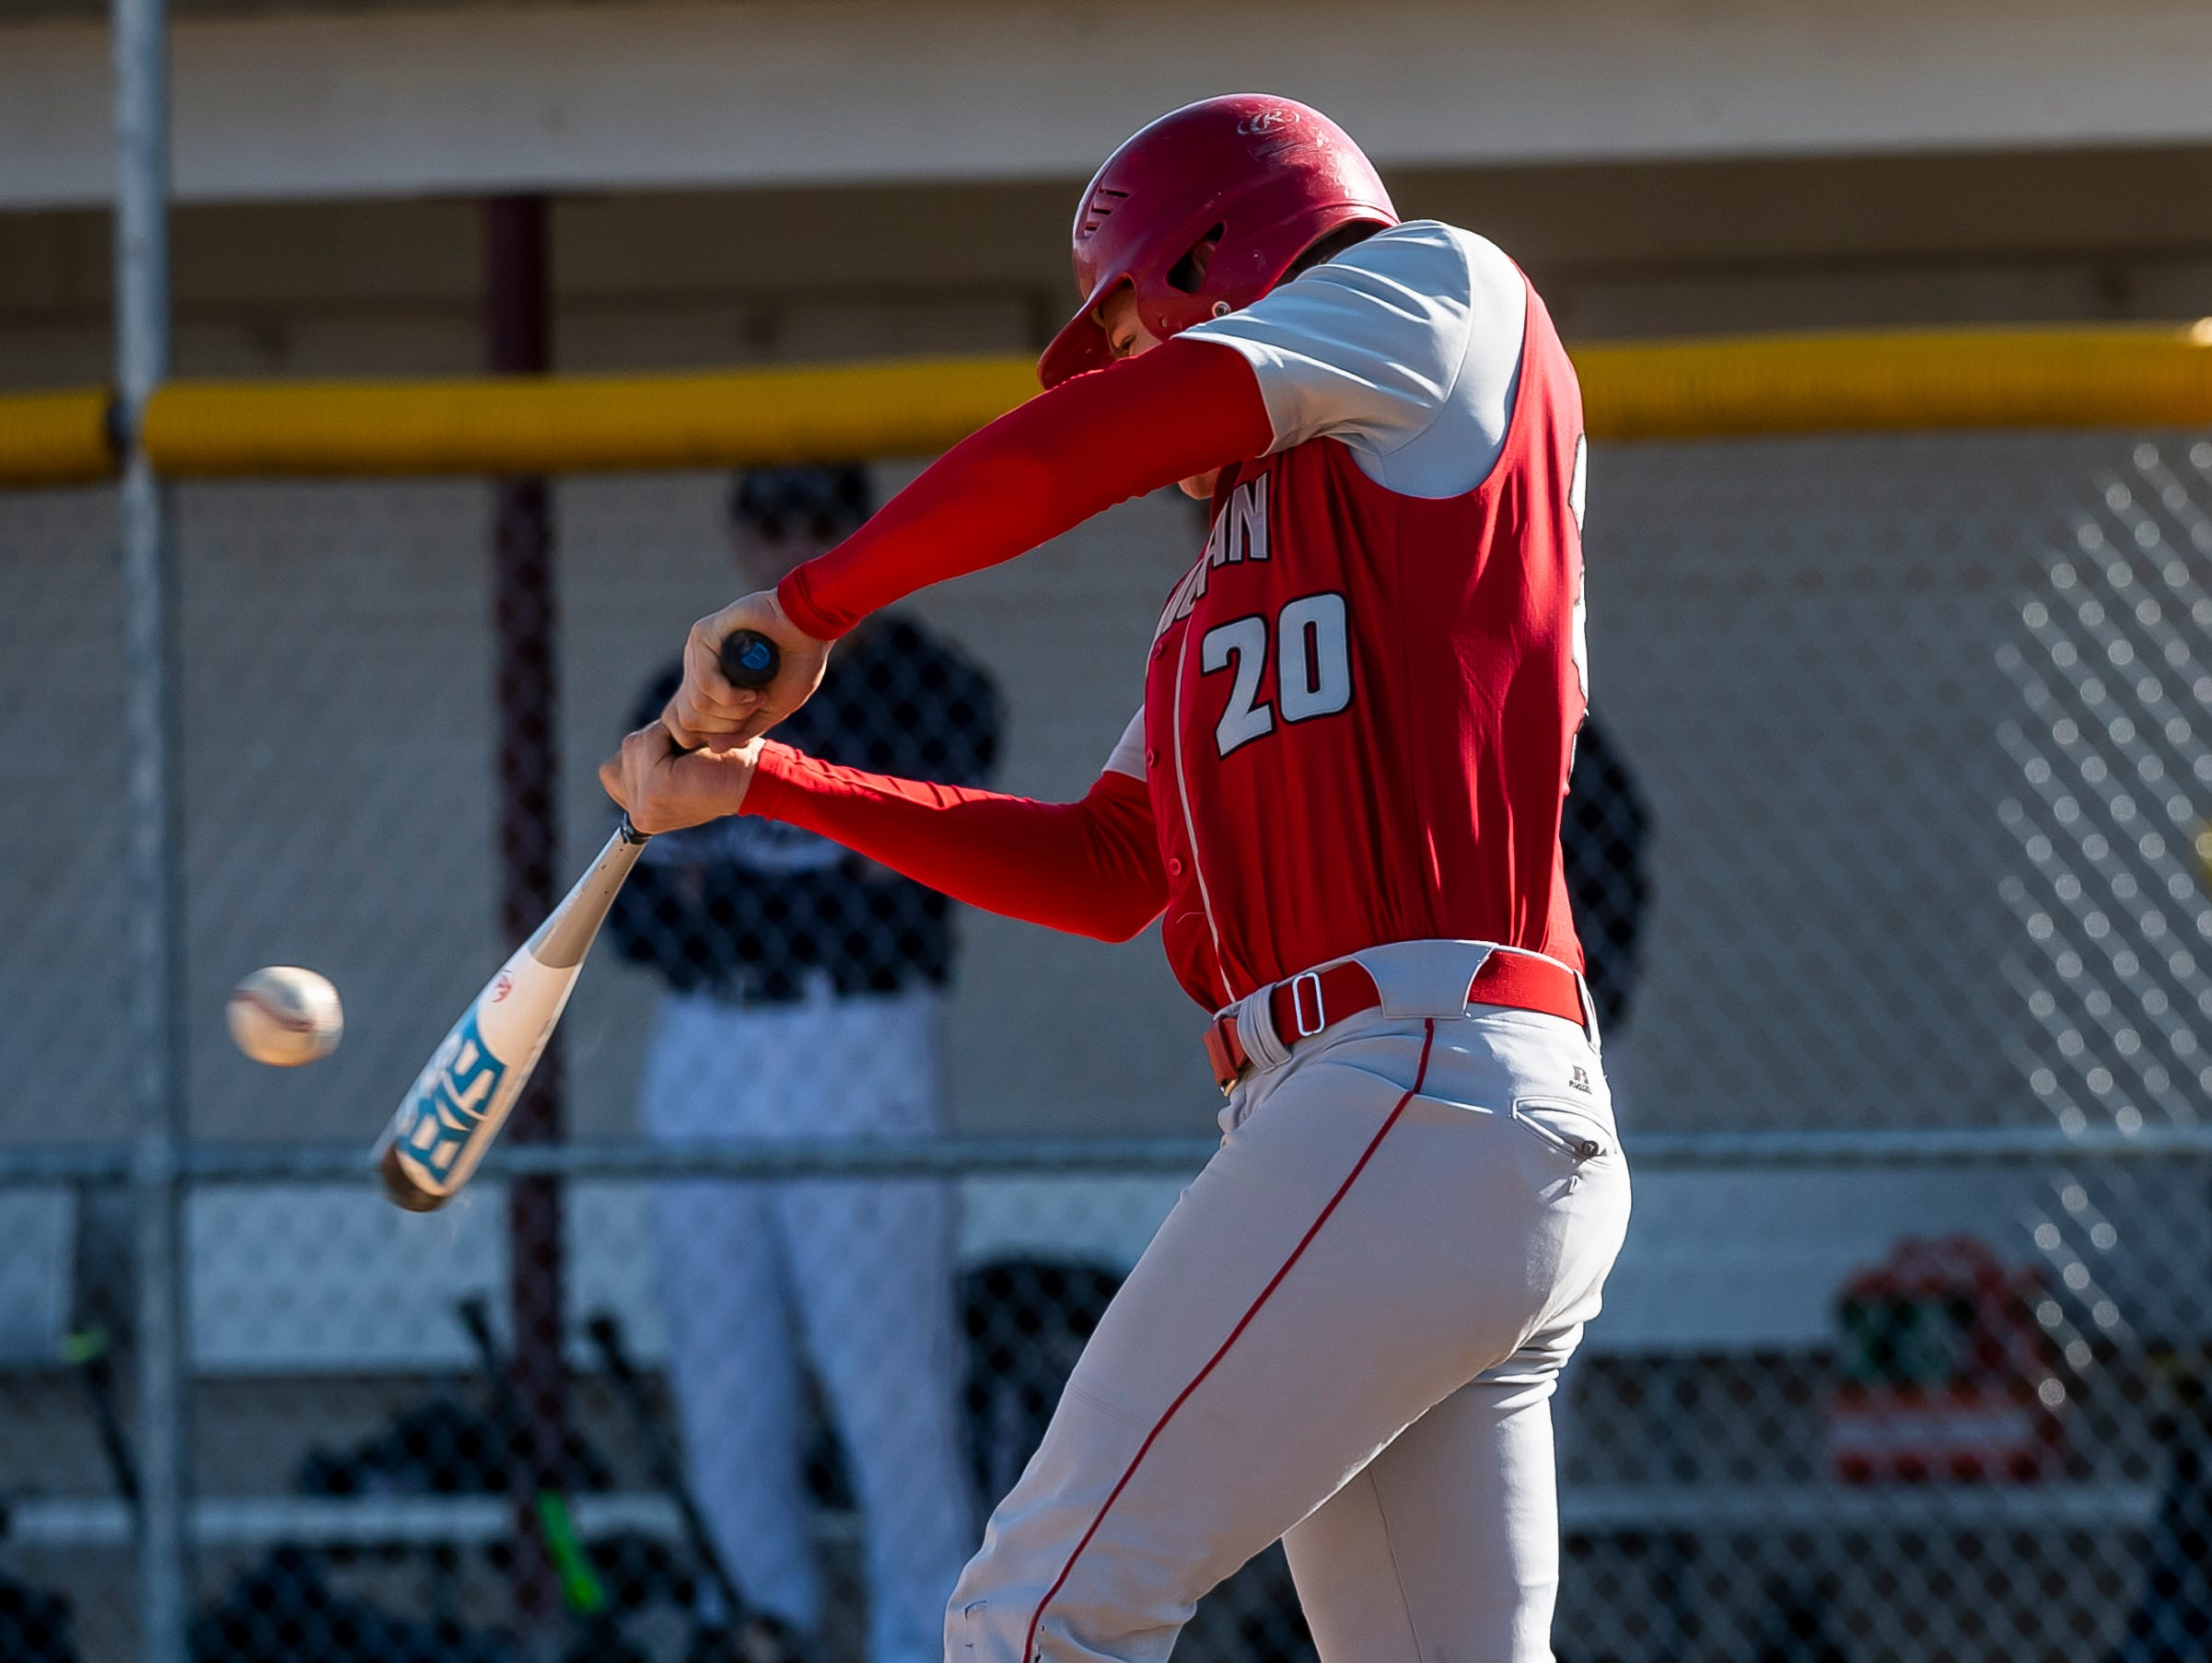 Bermudian Springs' Tyler Reinert makes contact with the ball to get on base during a YAIAA baseball game against West York on Wednesday, April 3, 2019. The Eagles fell 14-11.